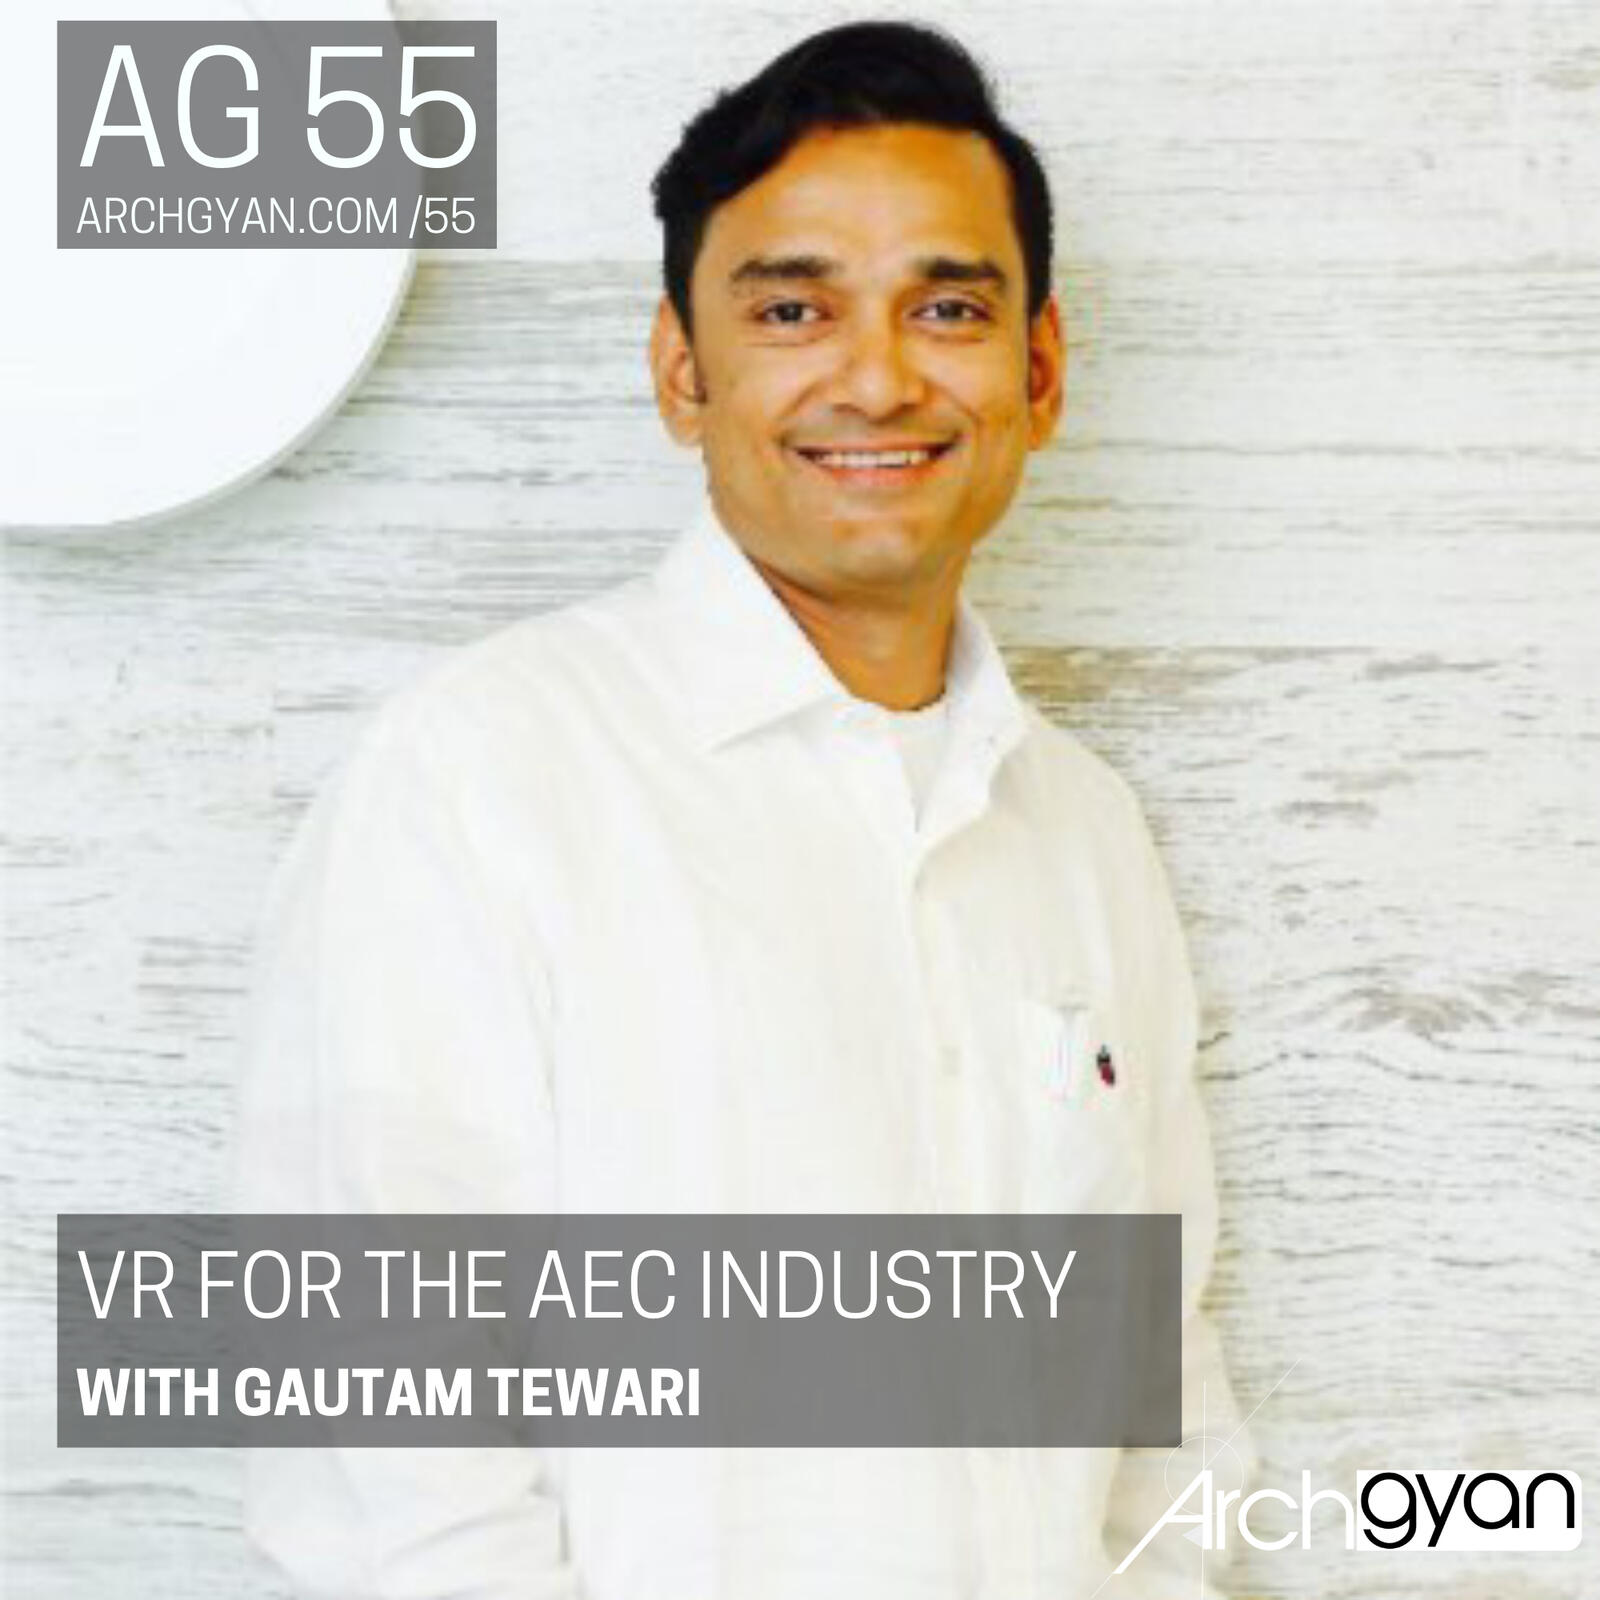 VR for the AEC Industry with Gautam Tewari | AG 55